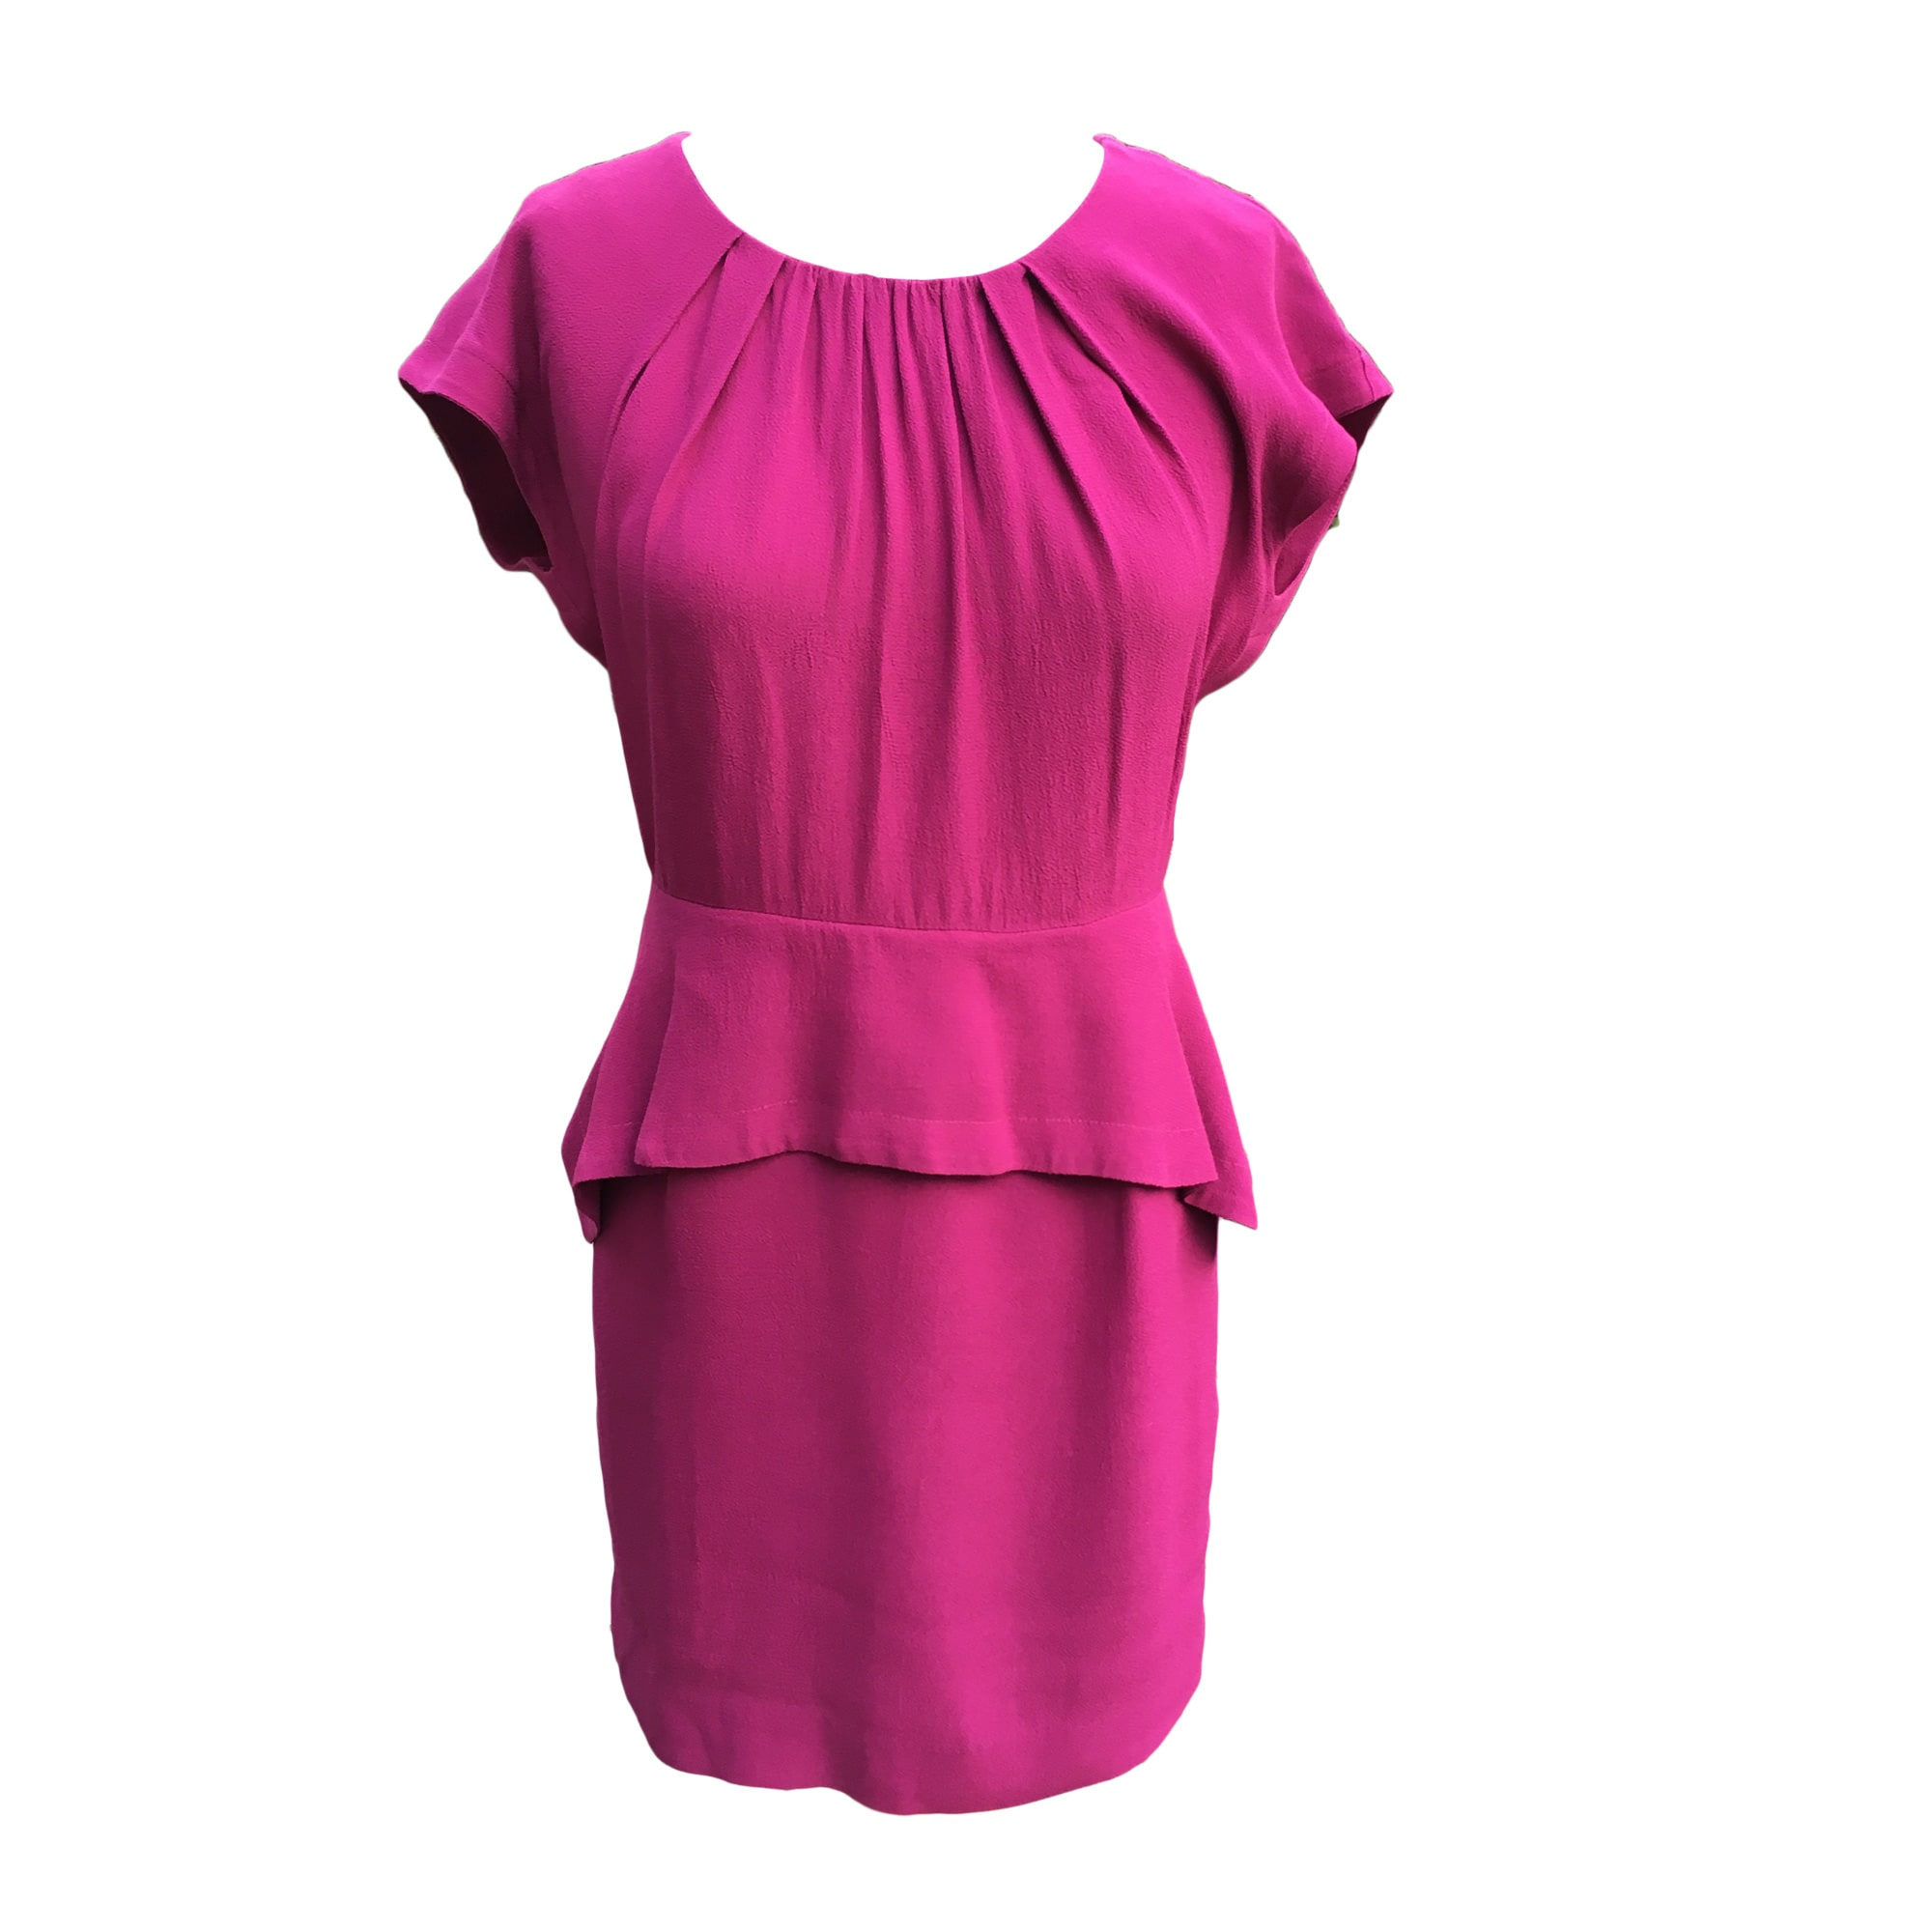 Mini Dress SANDRO Pink, fuchsia, light pink